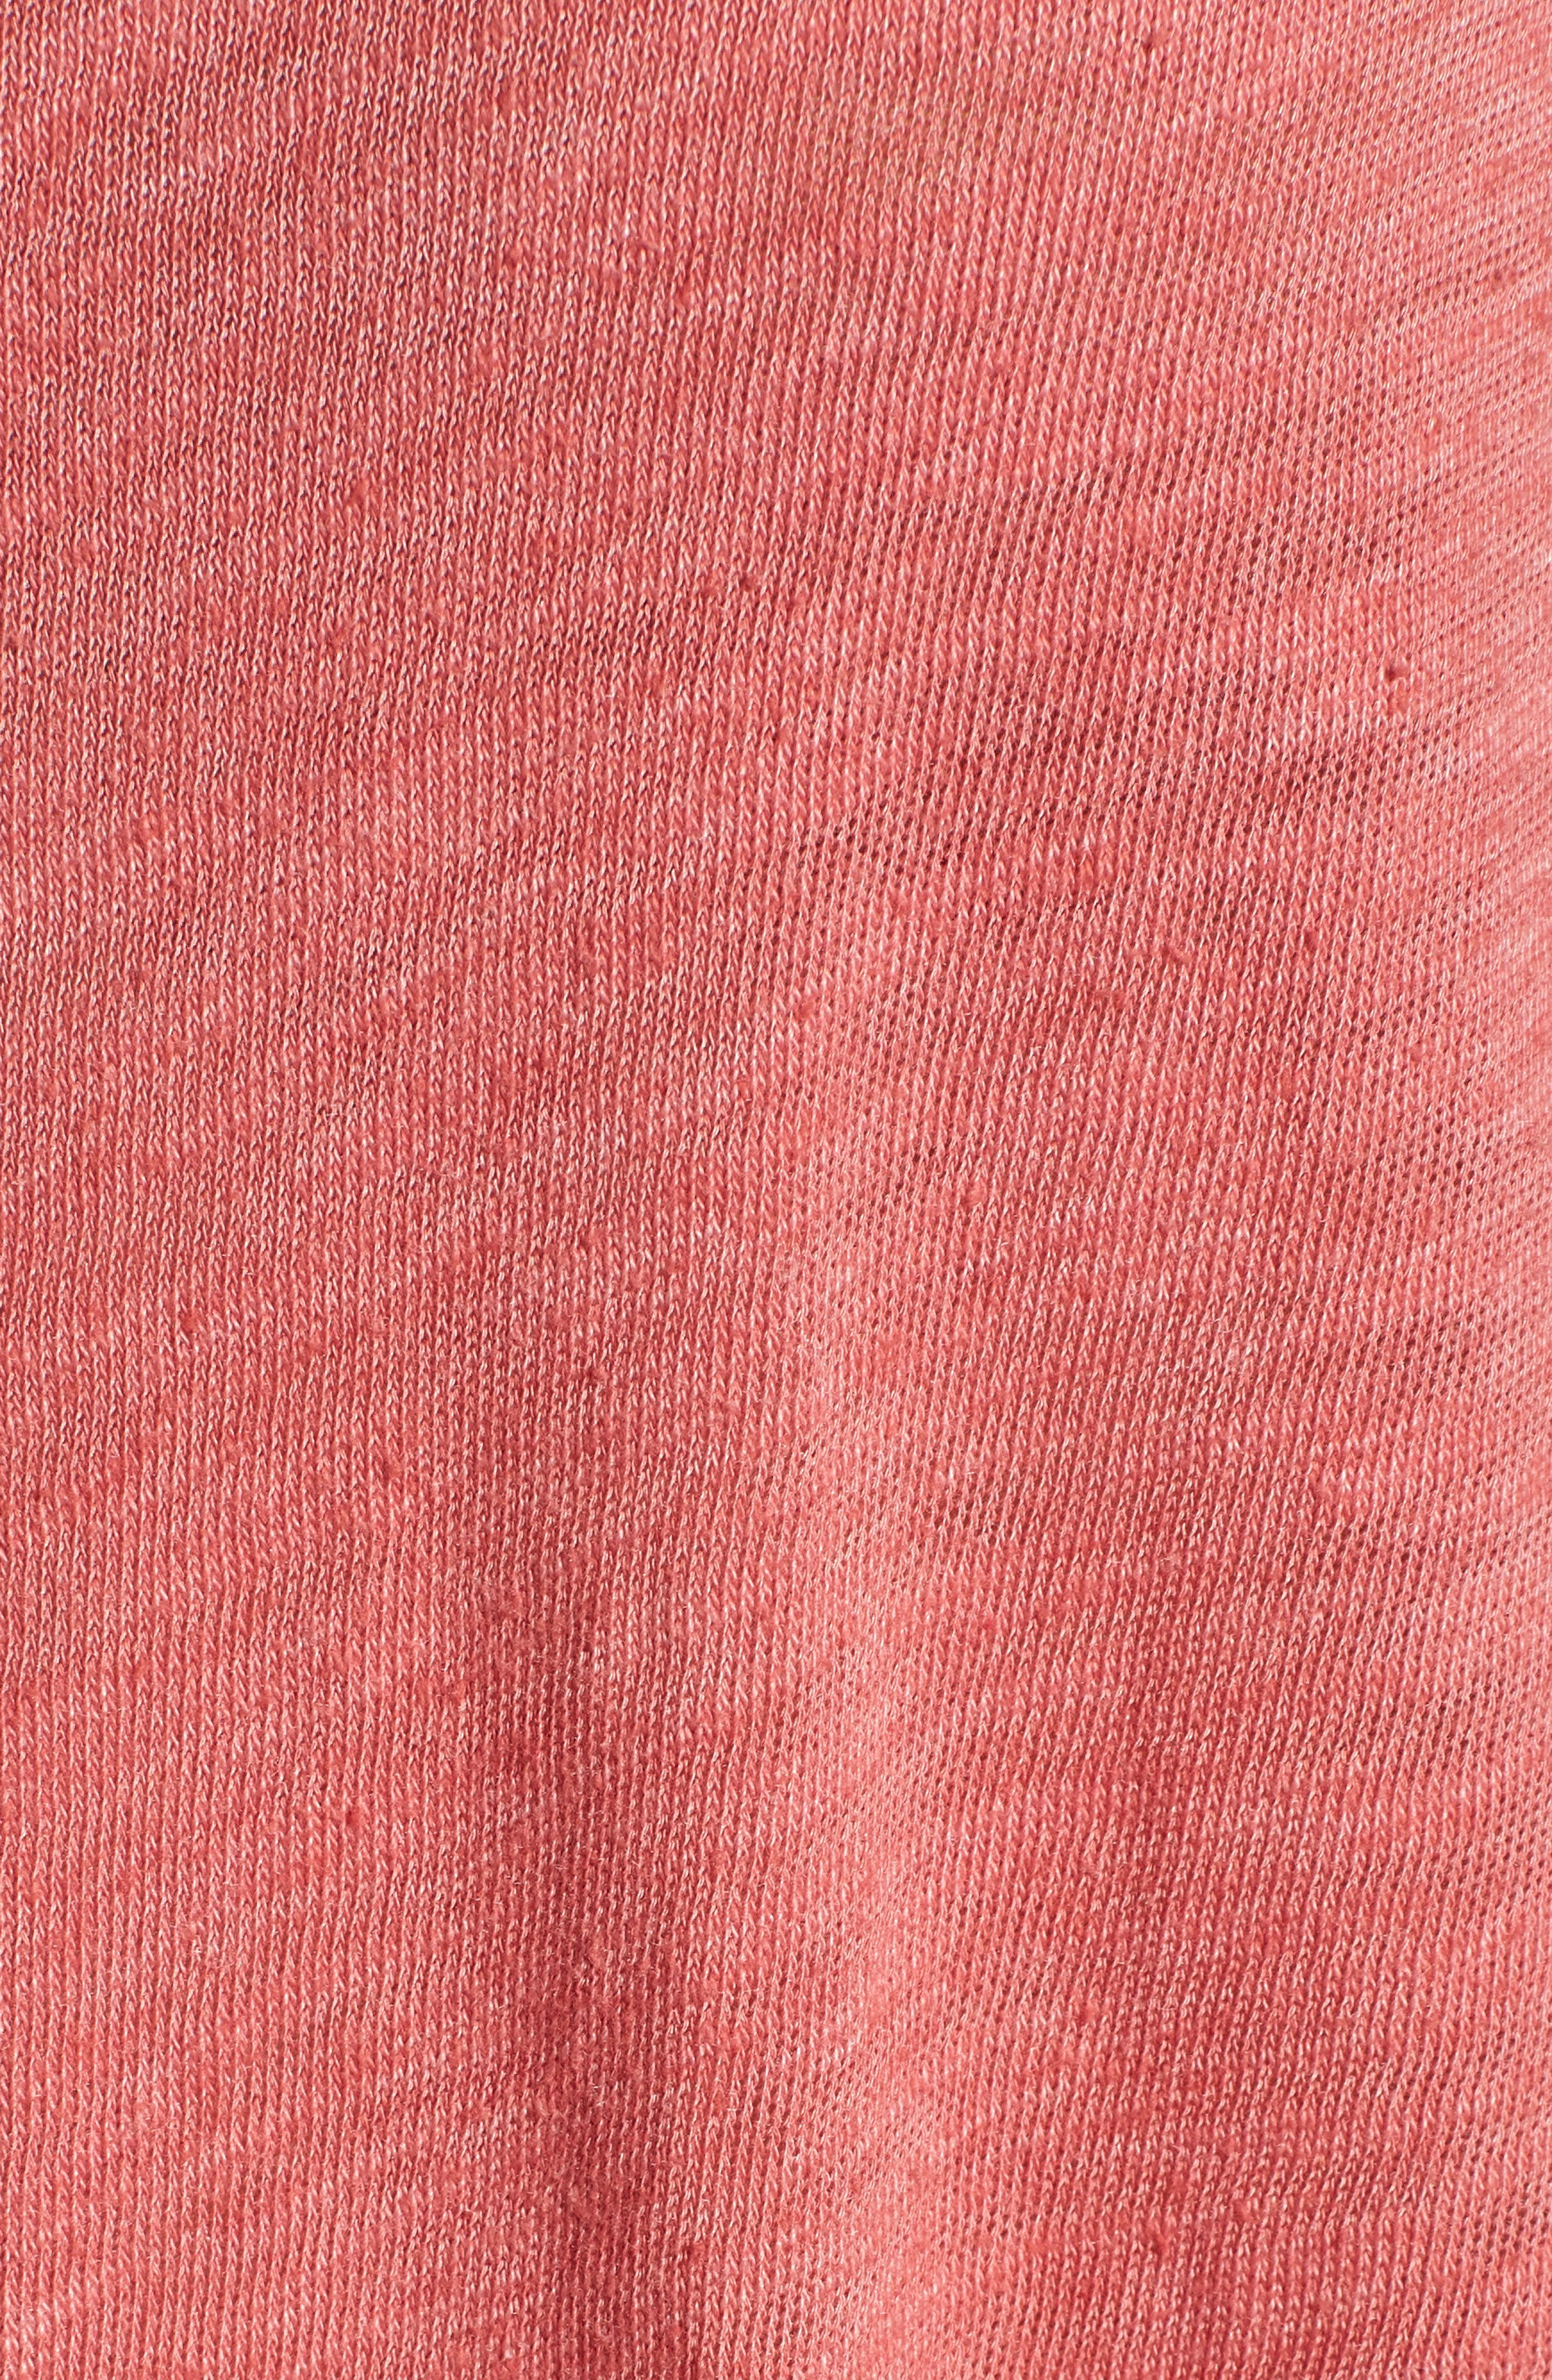 V-Neck Tee,                             Alternate thumbnail 6, color,                             Strawberry Rouge